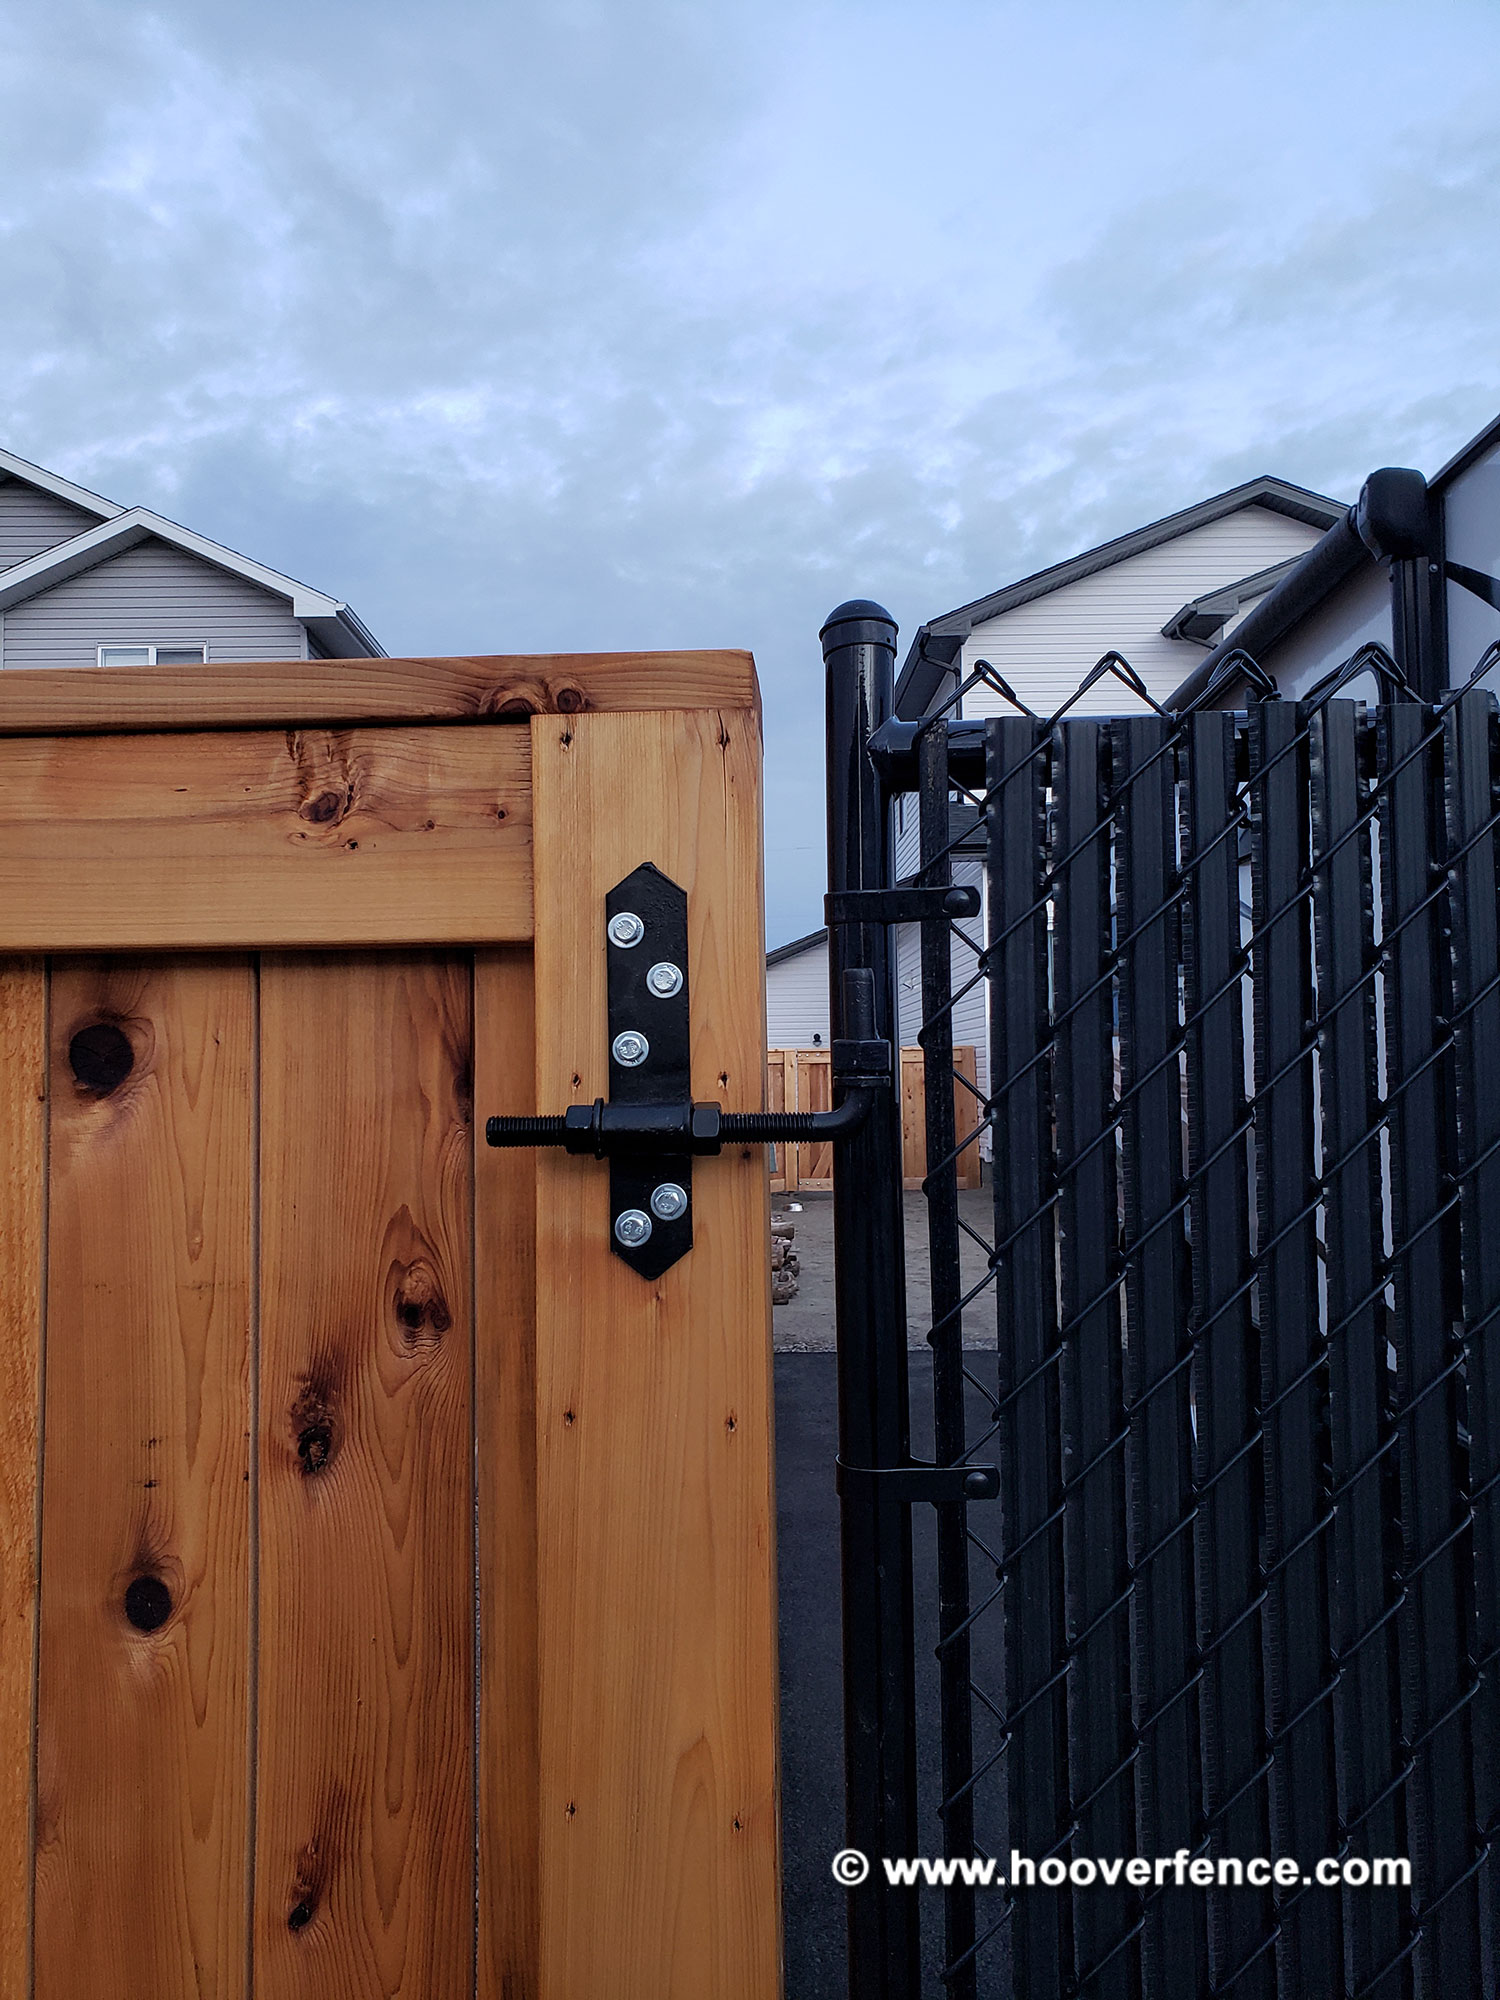 Customer Photo - Black Double Chain Link Gate Installed on Cedar Fence - Alberta, Canada